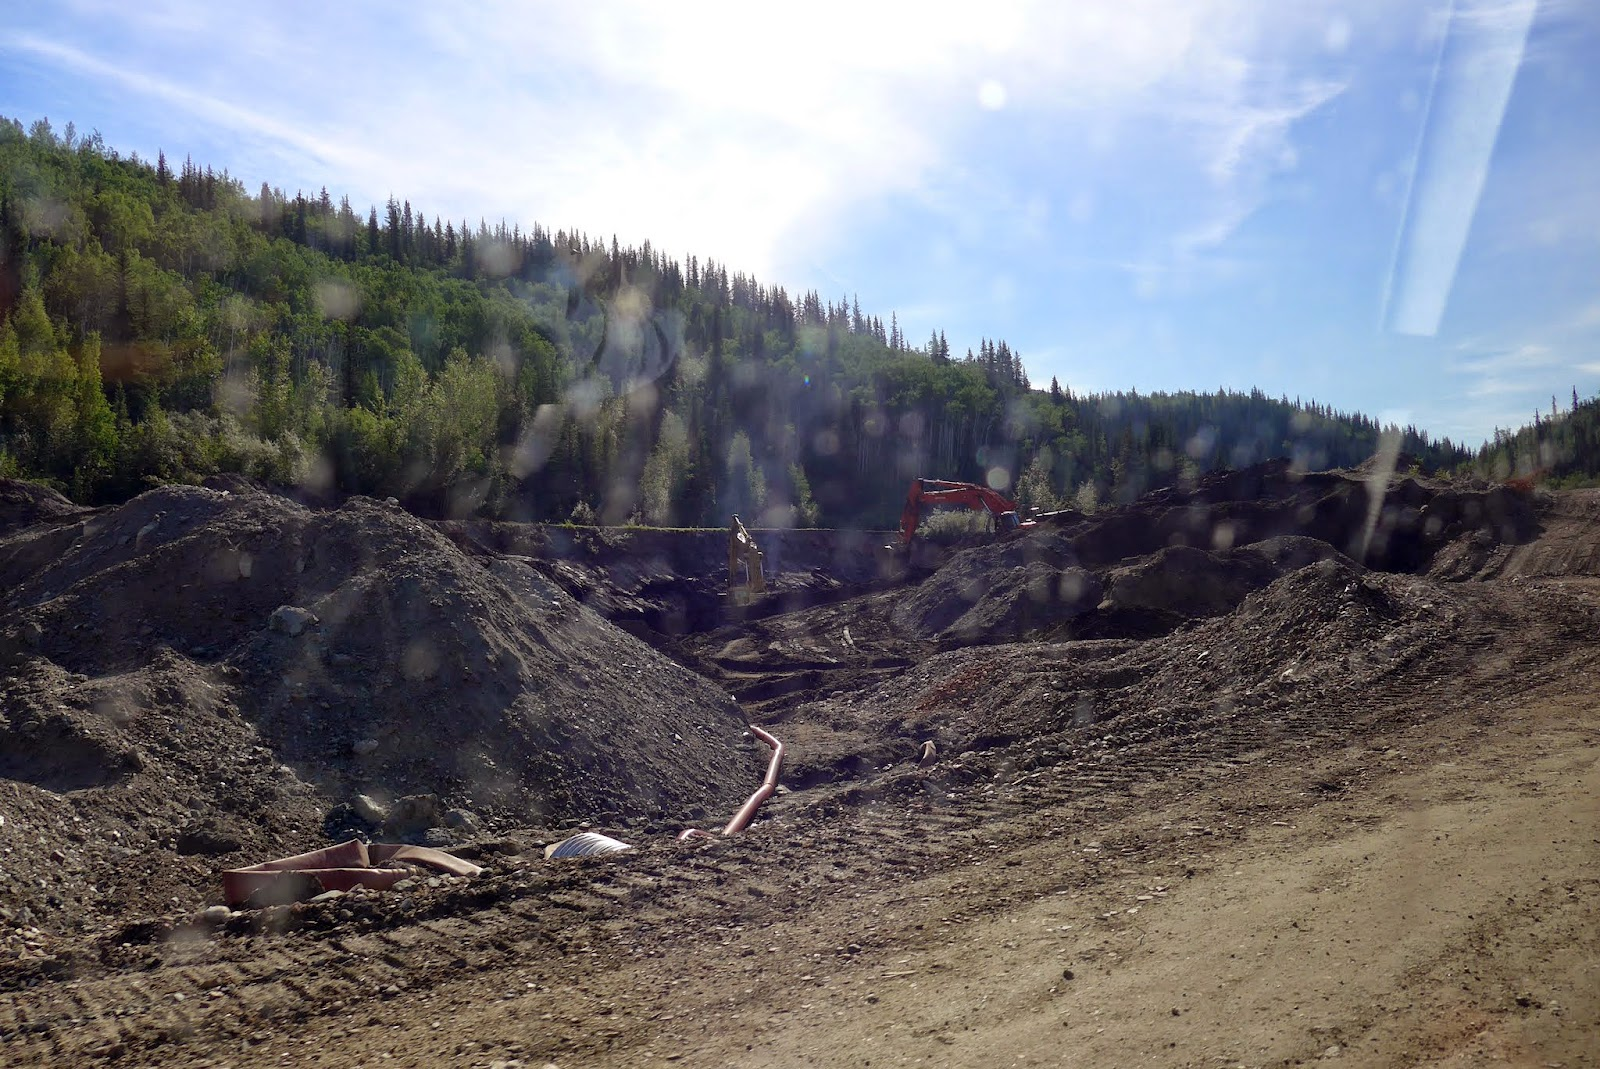 An active placer mining site.